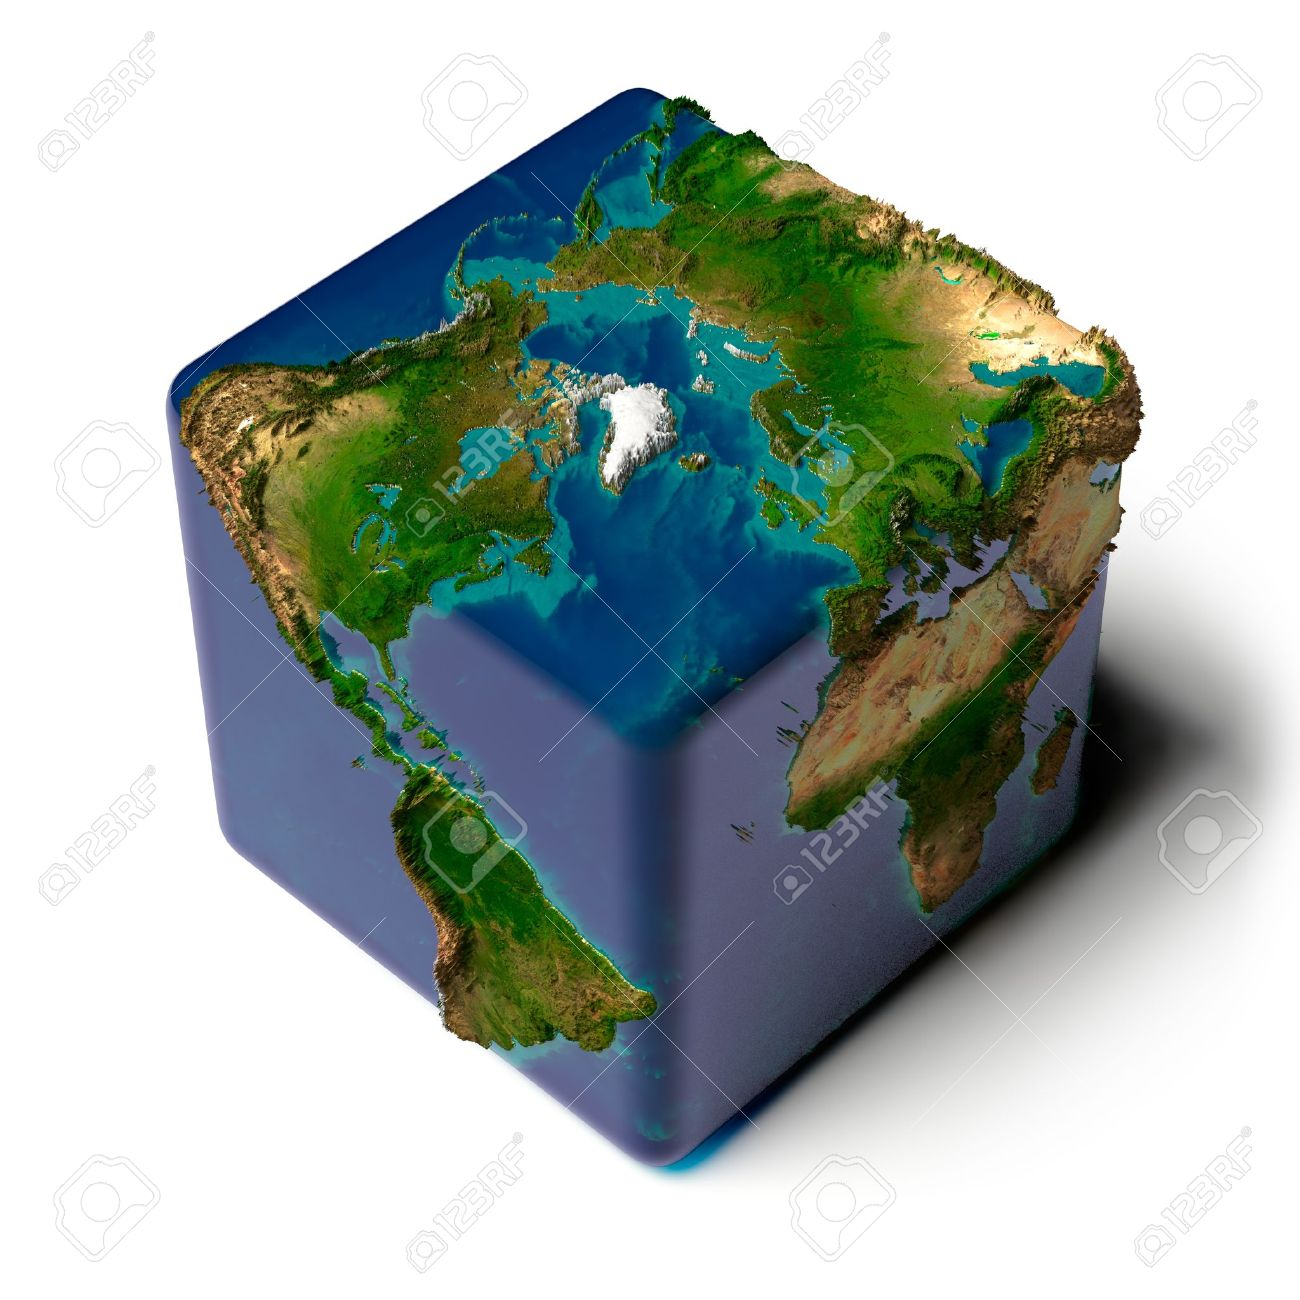 Square Earth Map.Earth As A Cube With A Shadow With A Translucent Water Detailed